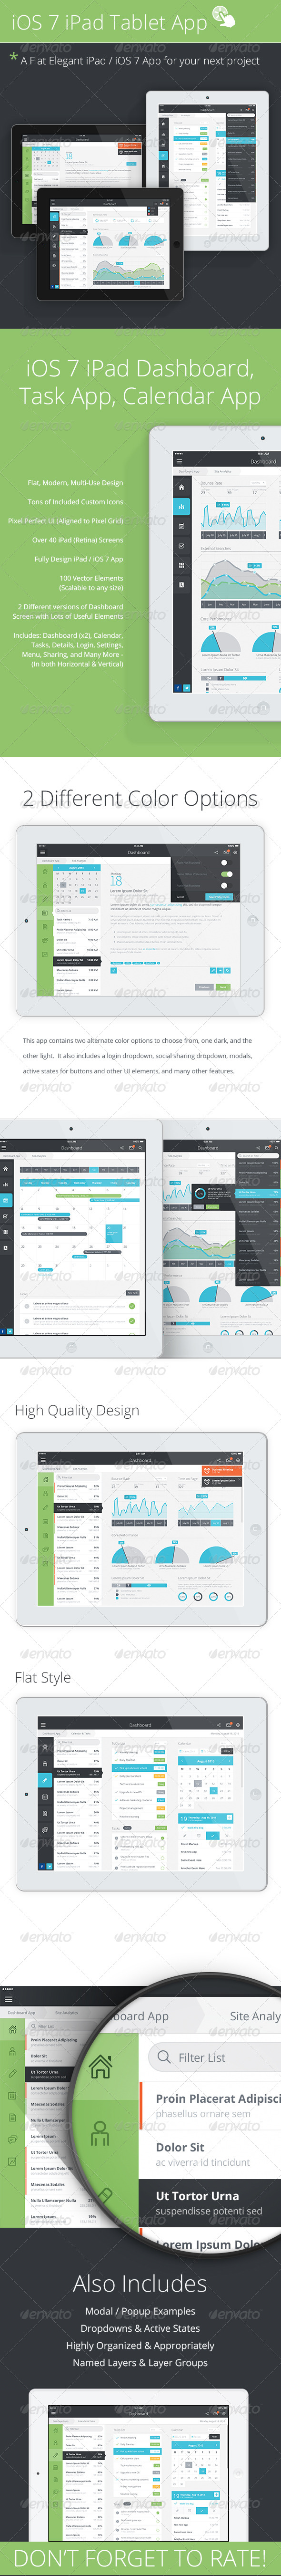 GraphicRiver Tablet App & Mobile Dashboard 5405147